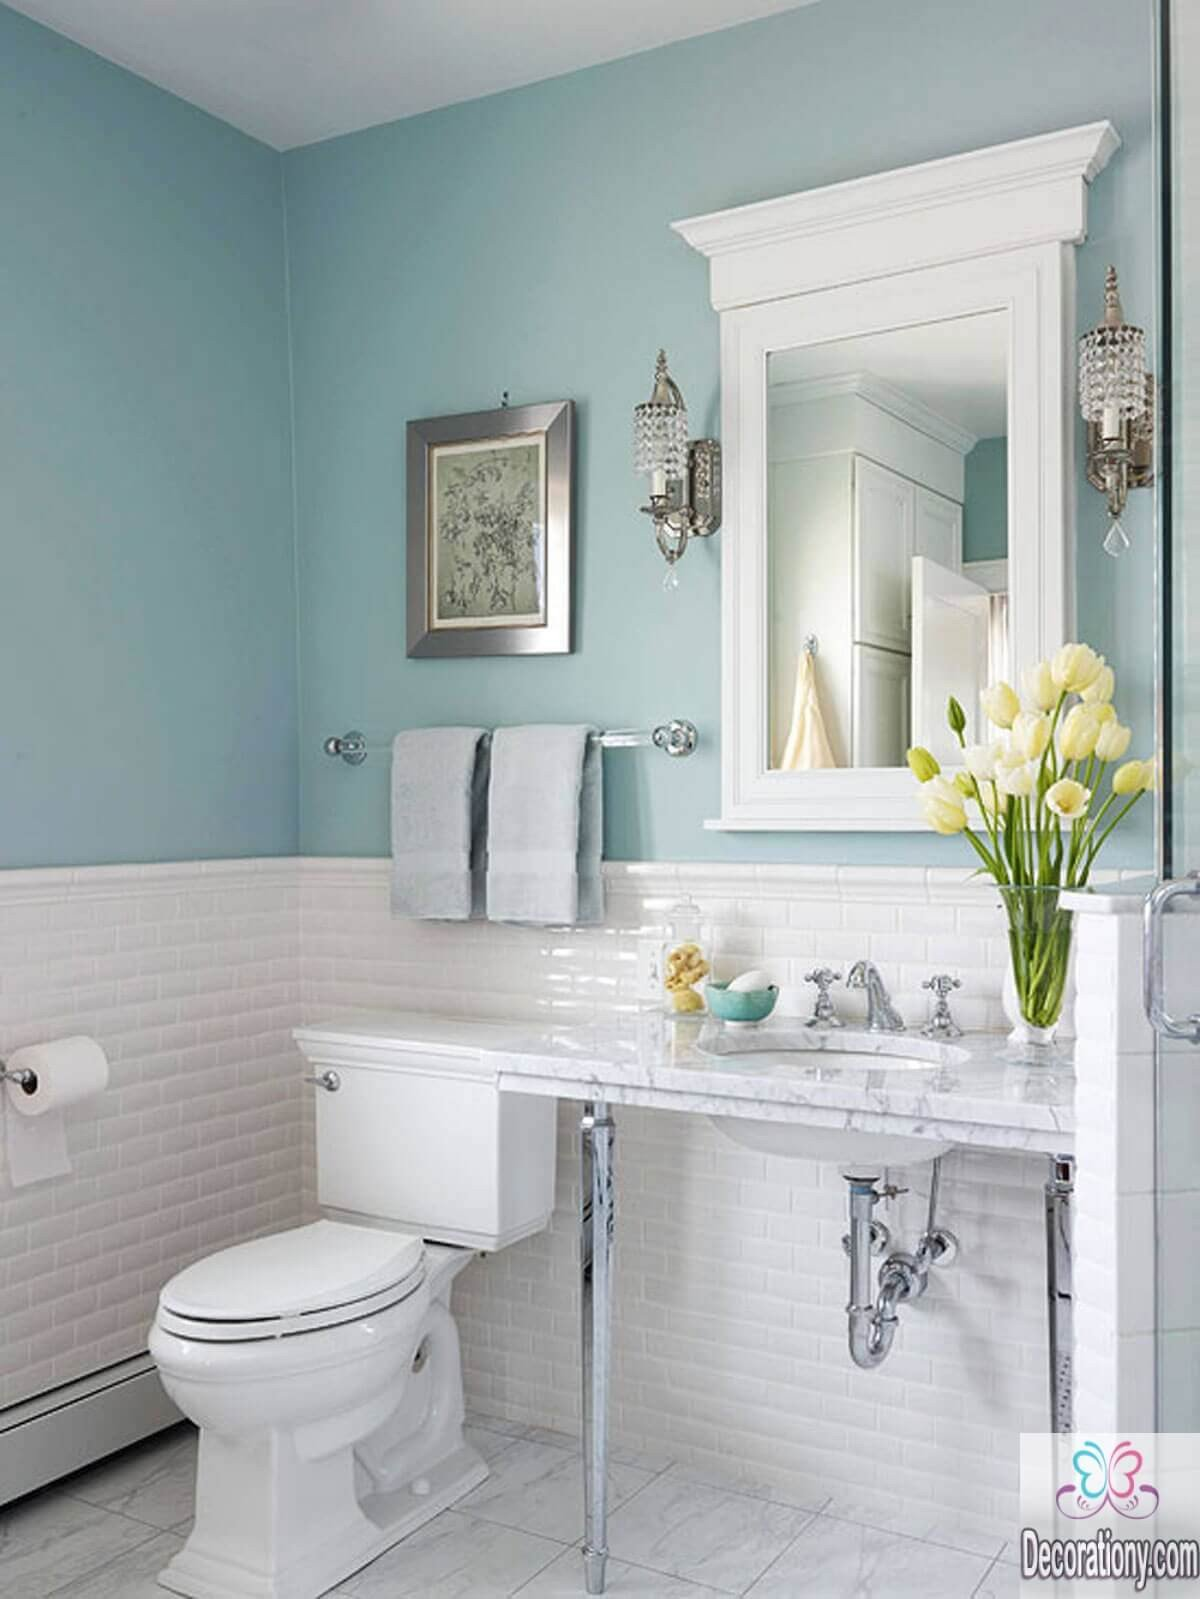 Blue and White Bathroom Decor Best Of 10 Affordable Colors for Small Bathrooms